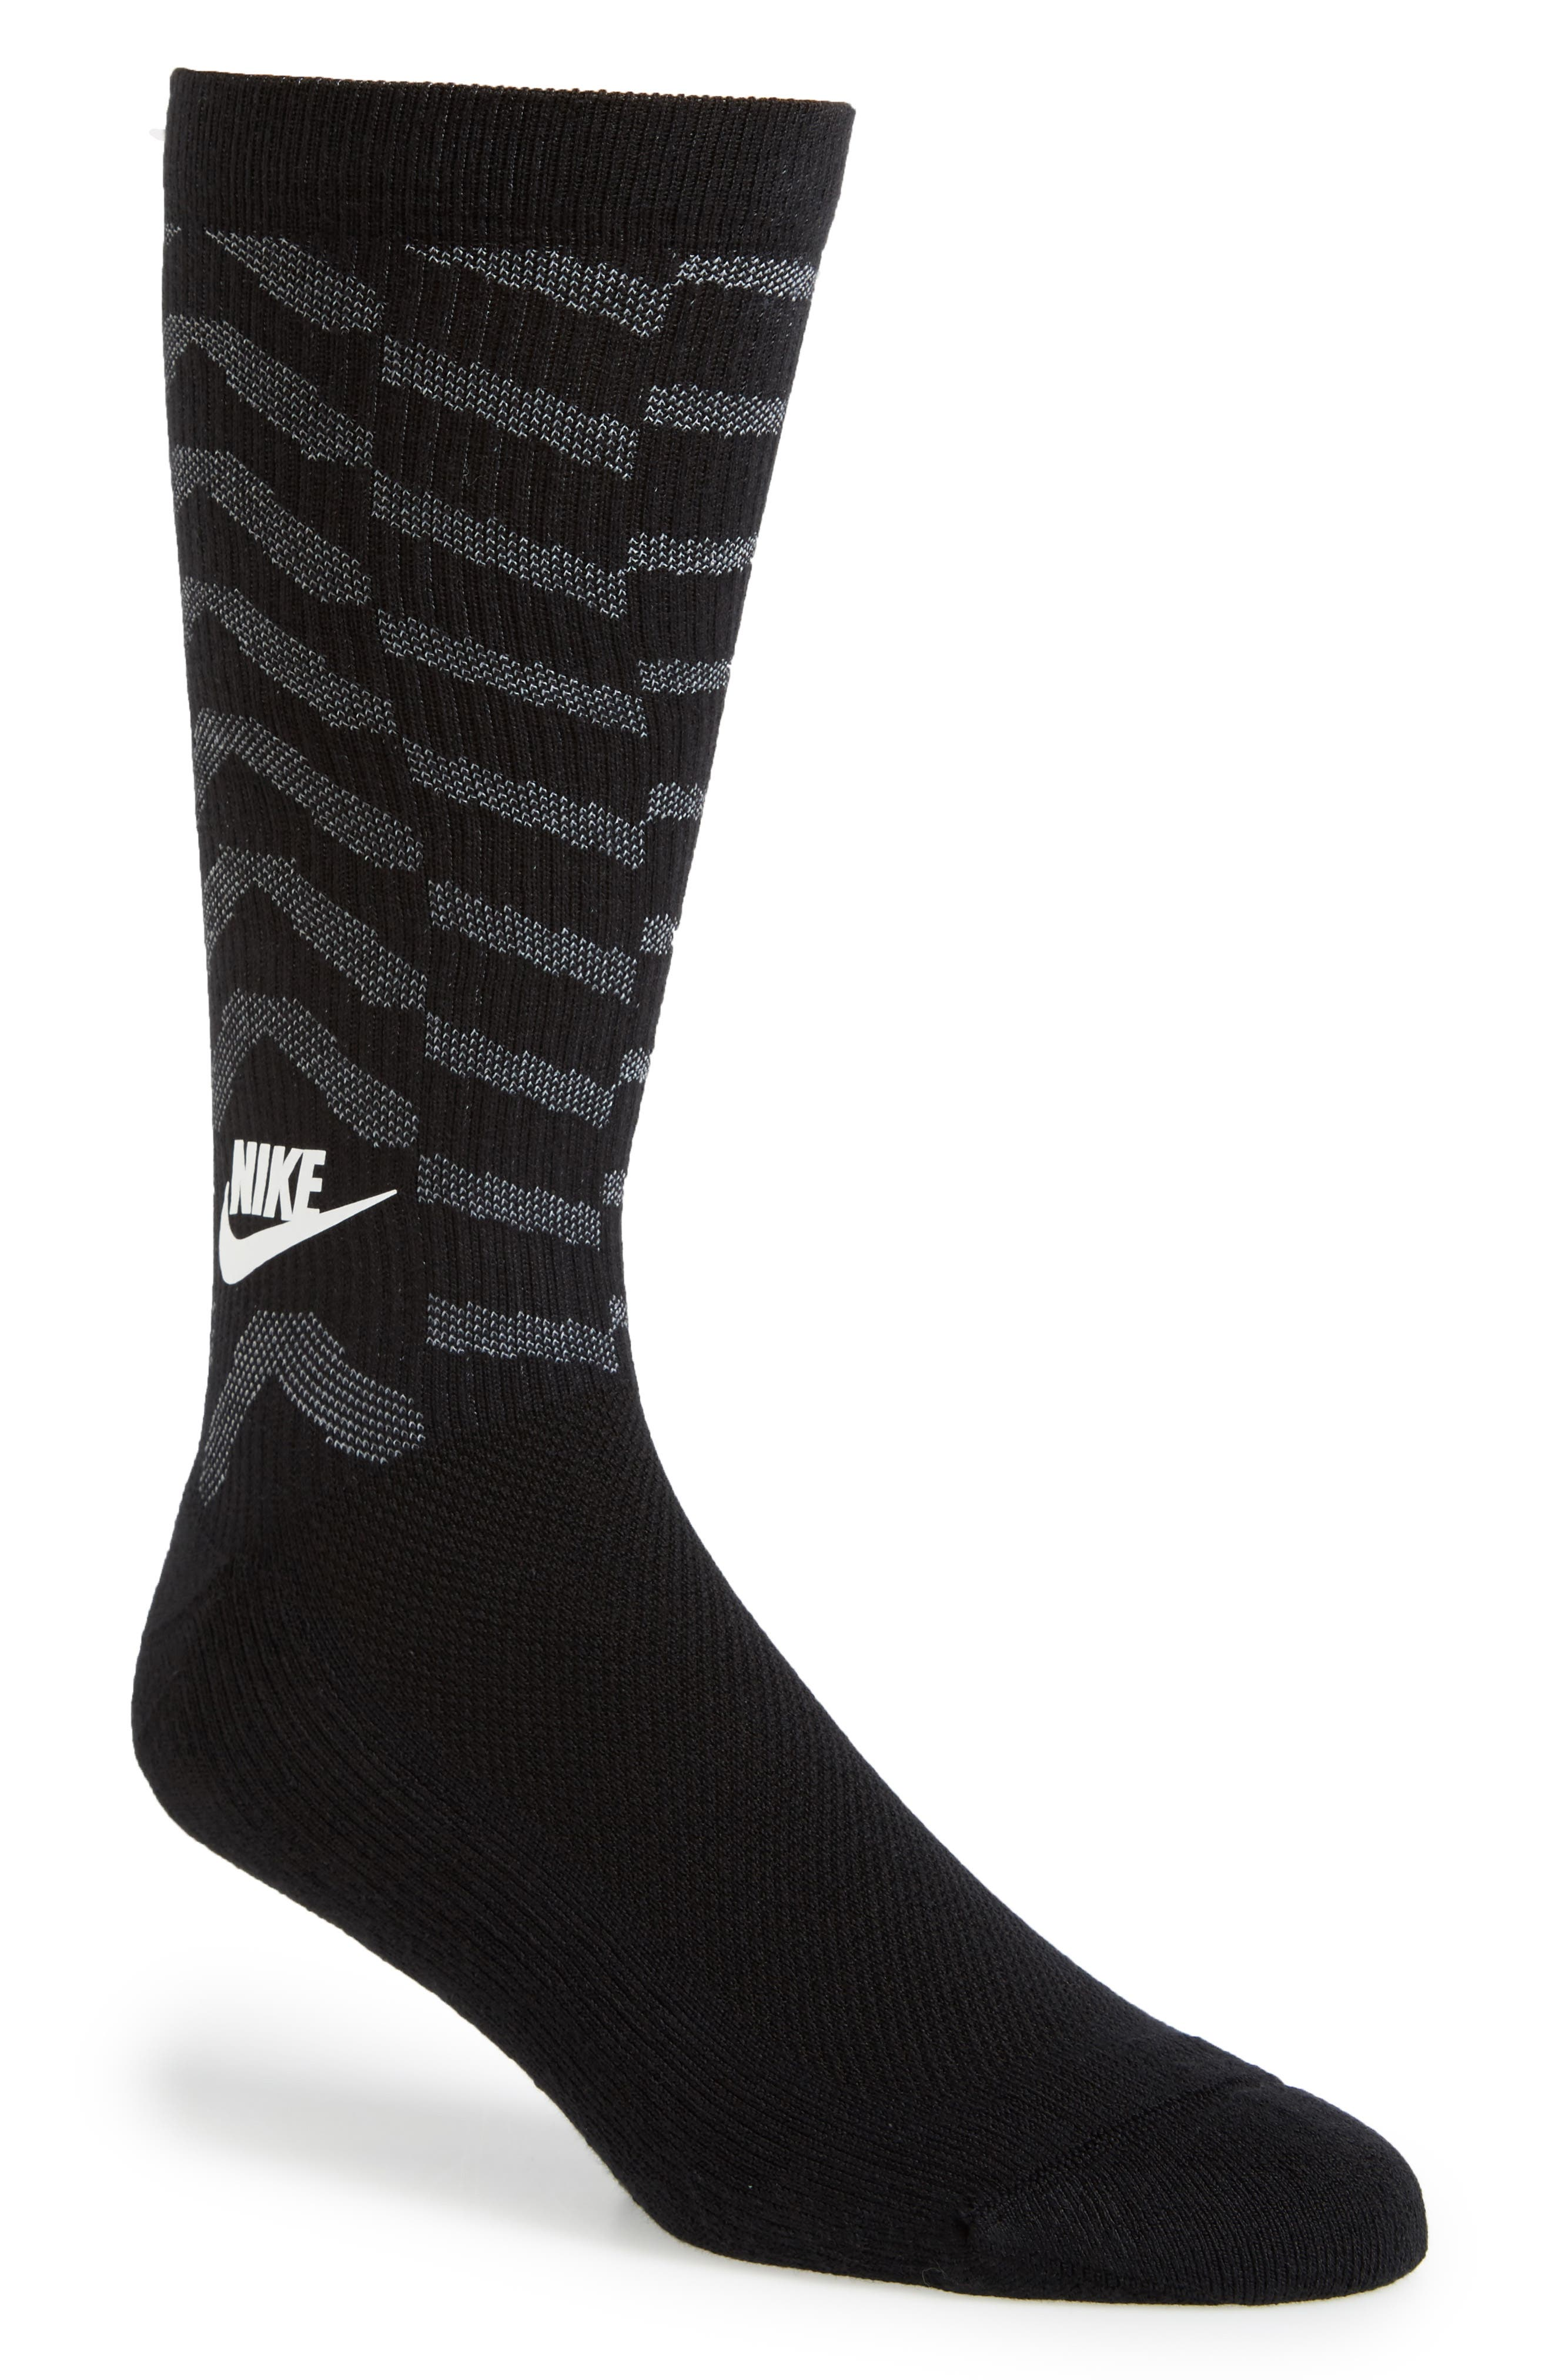 Statement Graphic Socks,                             Main thumbnail 1, color,                             010